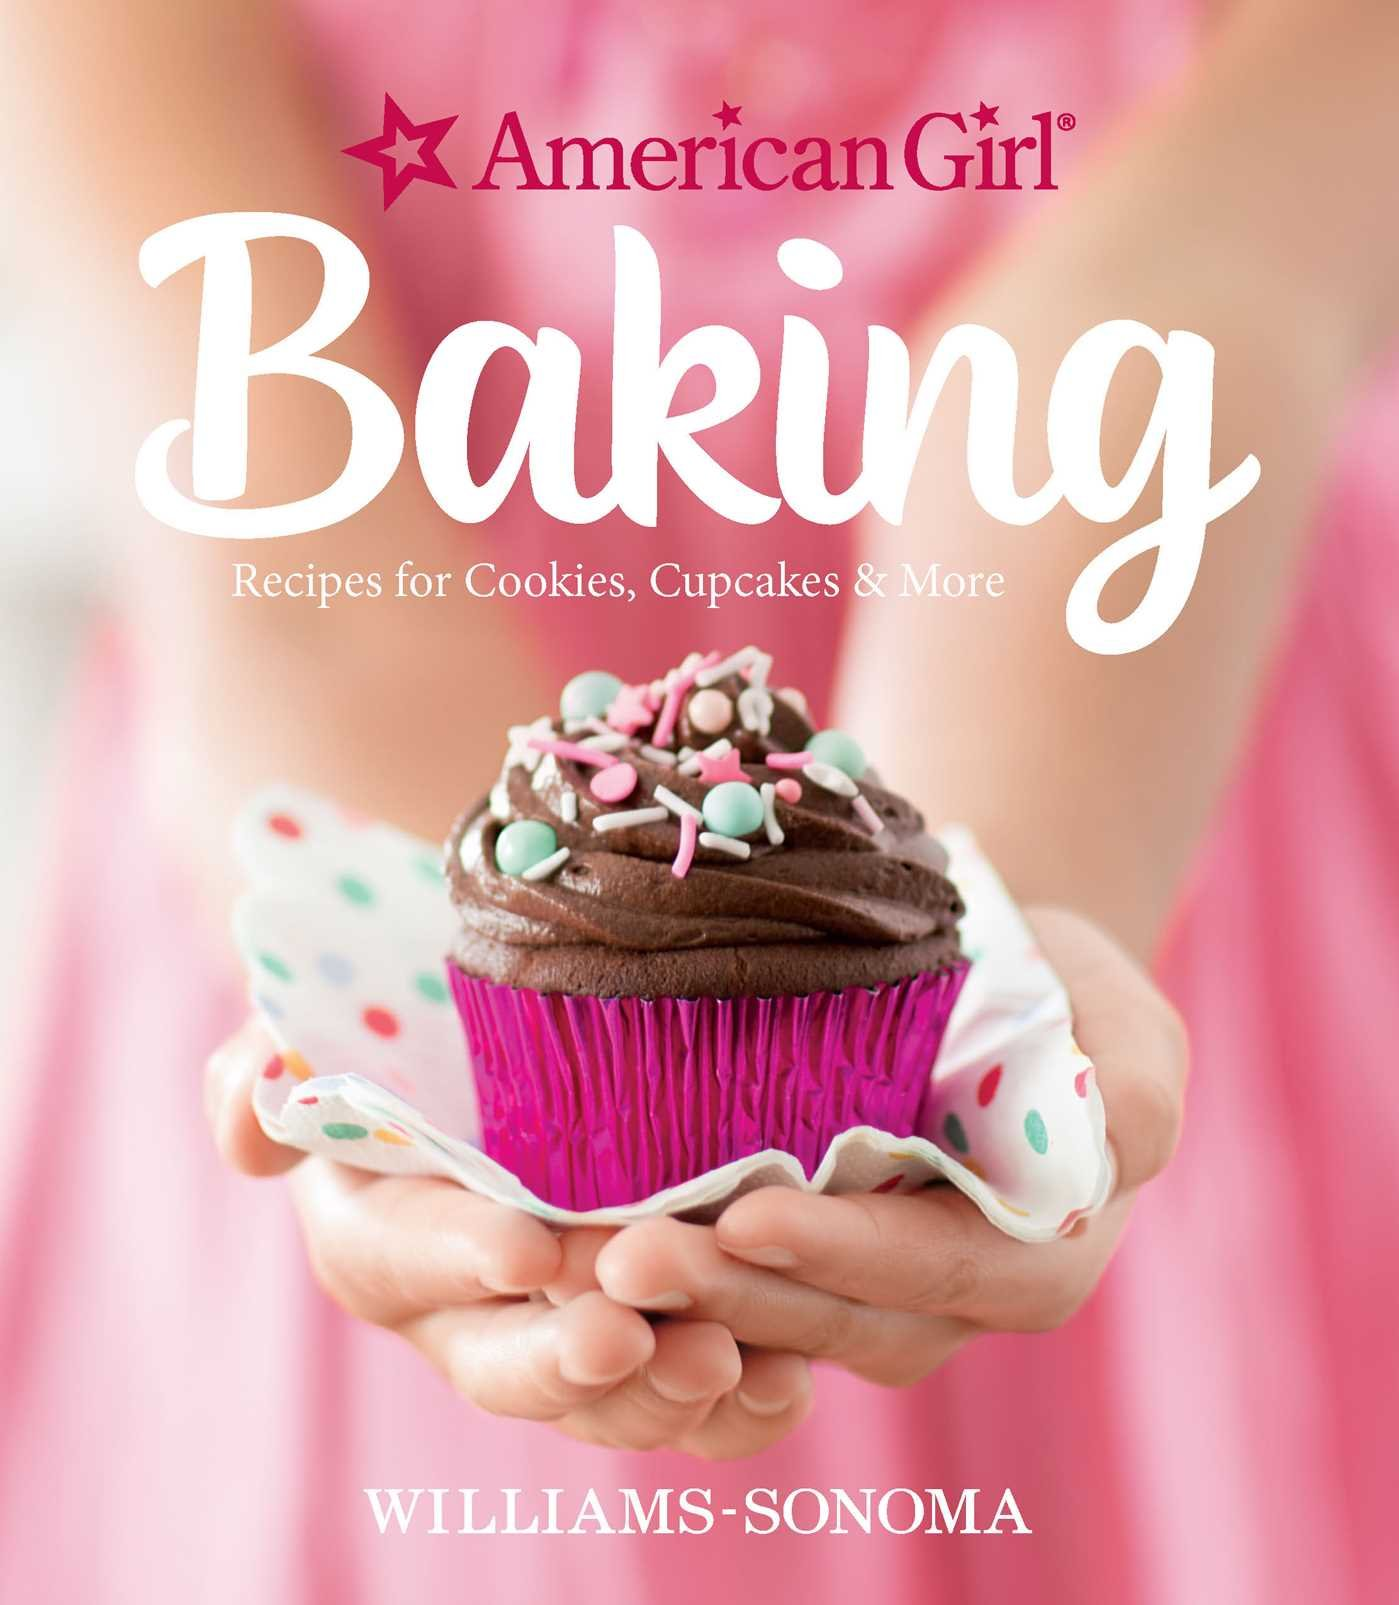 American Girl Baking: Recipes for Cookies, Cupcakes & More by Weldon Owen